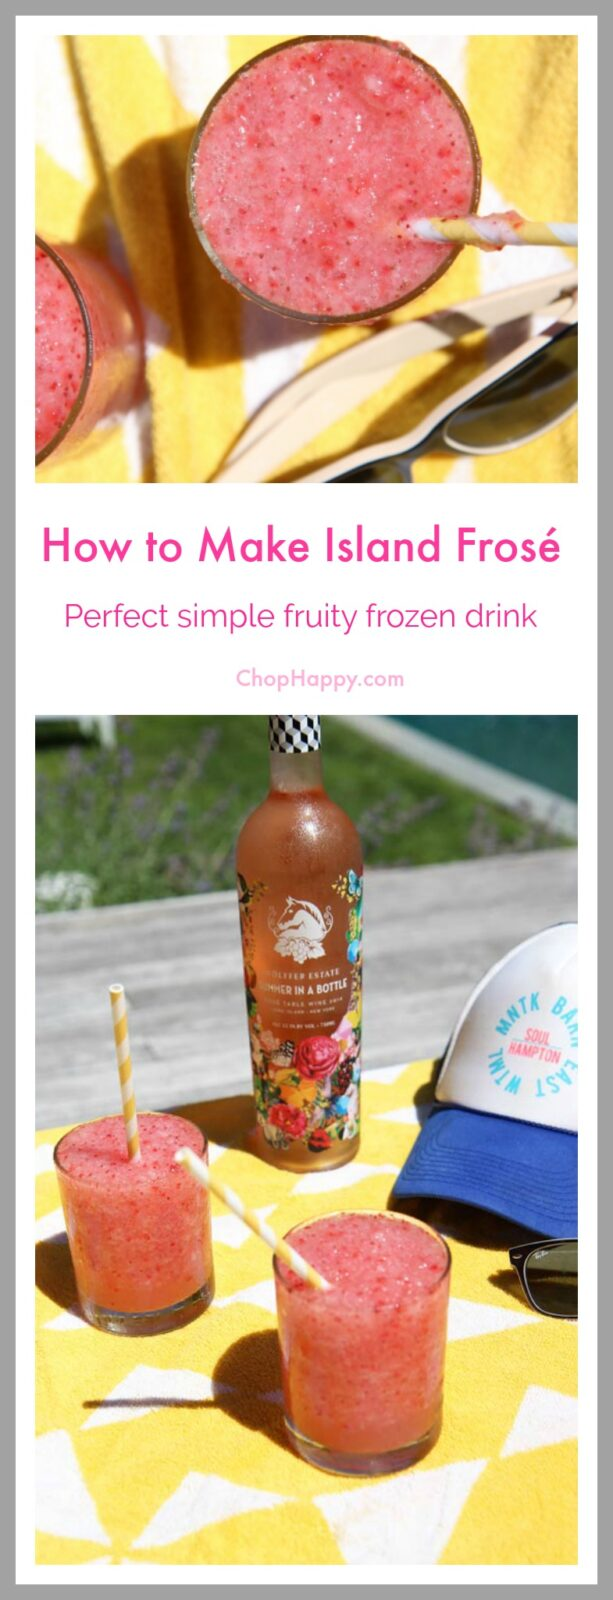 How to Make Island Frosé (Frozen Rosé) Recipe. Super easy, fun, and instant vacation in your backyard kind of recipe. www.ChopHappy.com